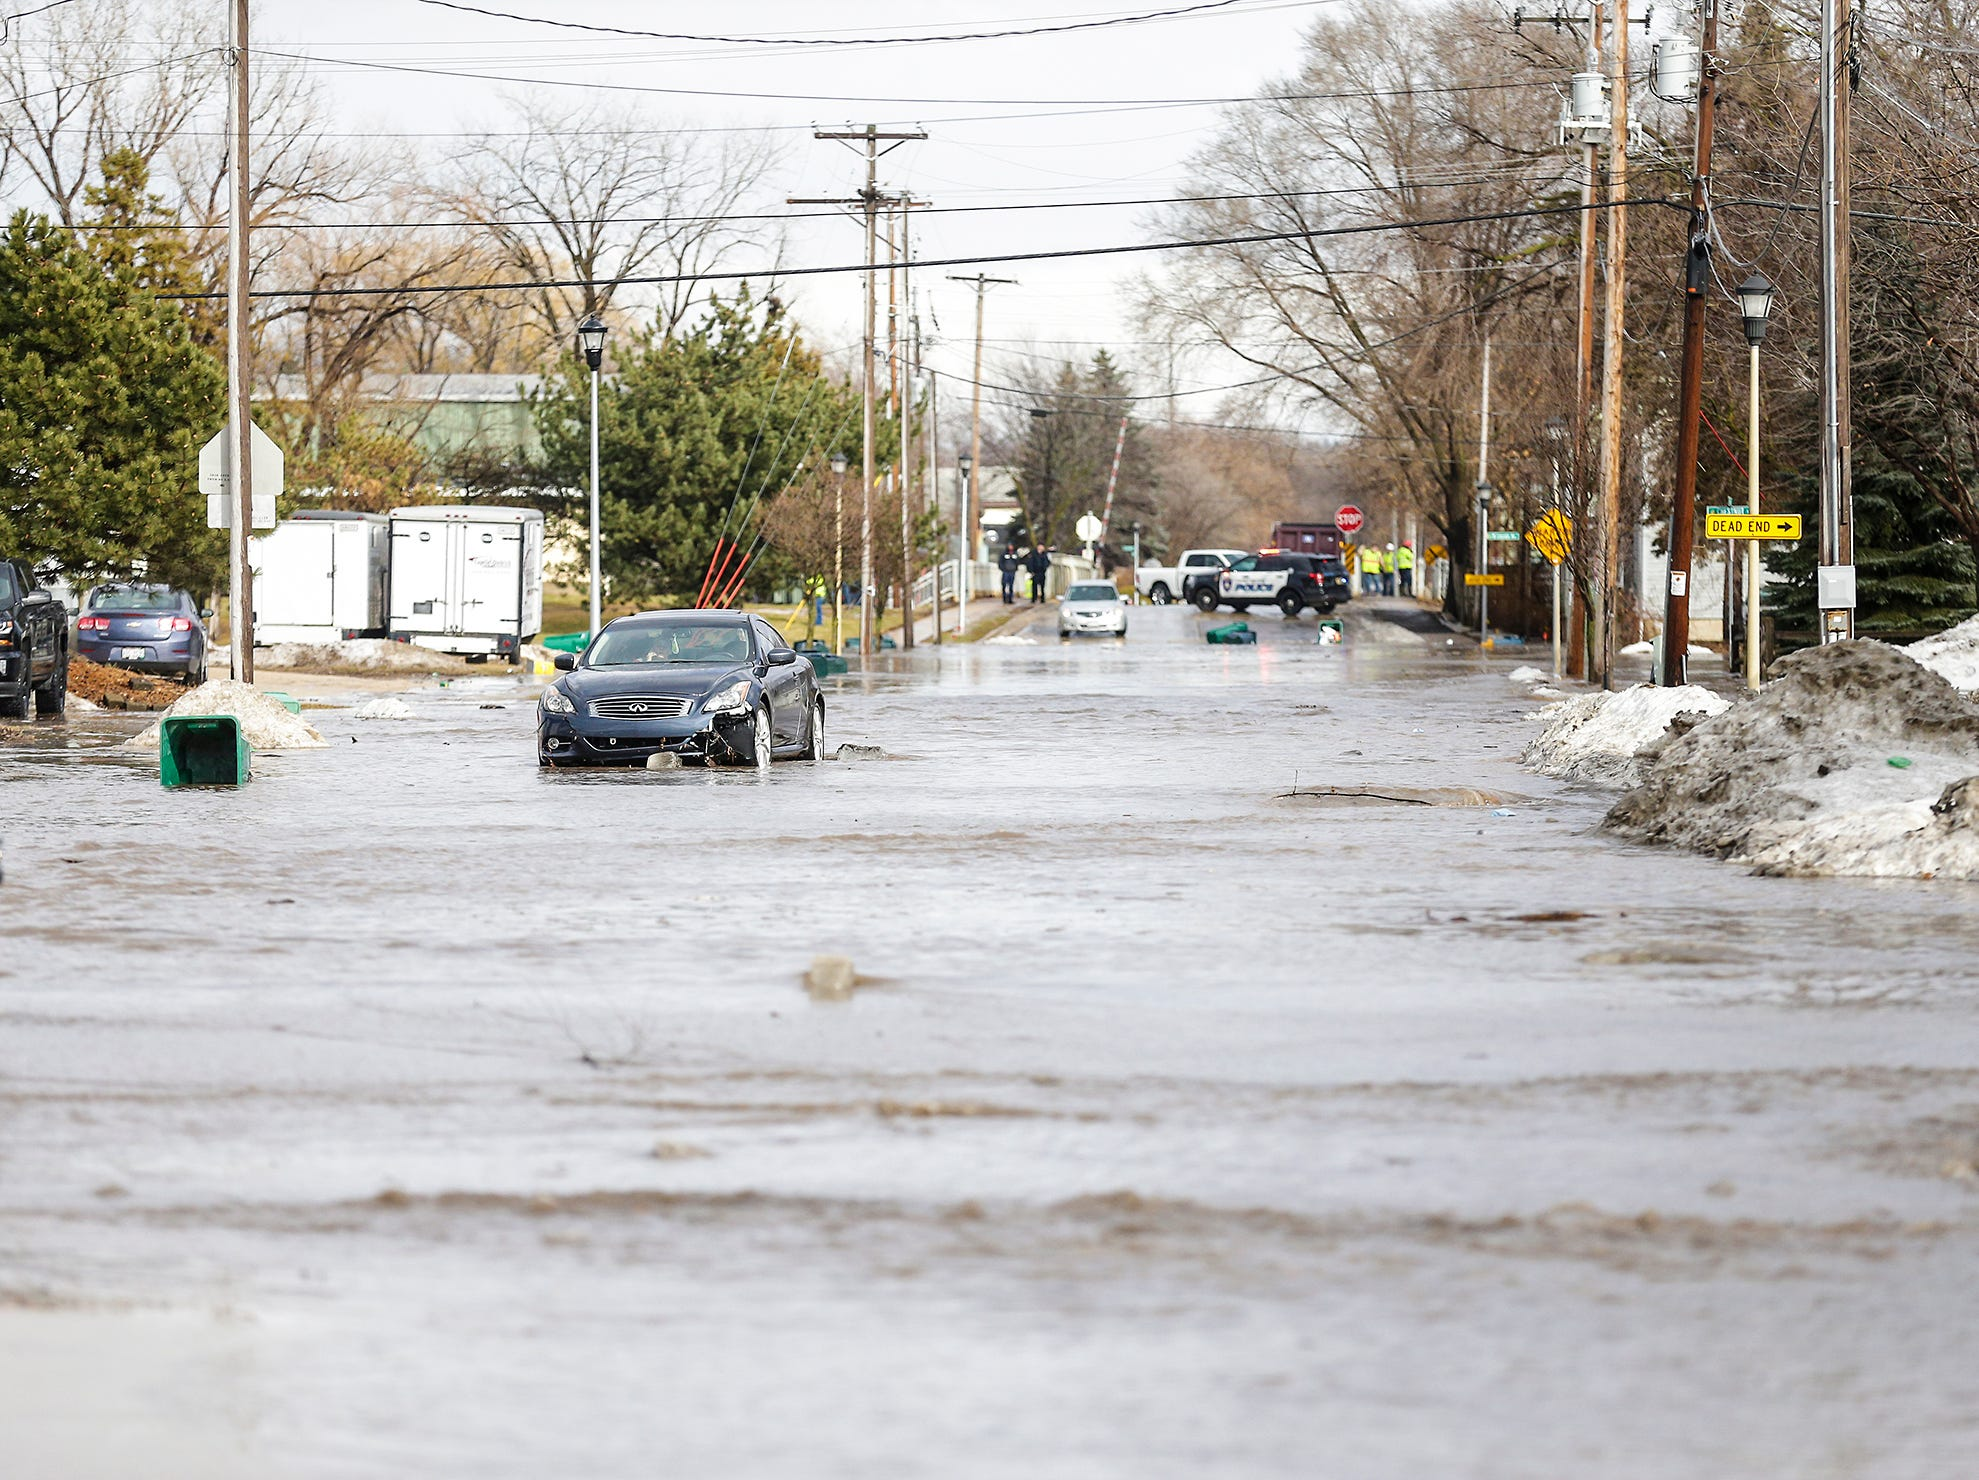 A car is stalled in high water Thursday, March 14, 2019 on West Arndt Street in Fond du Lac, Wisconsin. Ice jams on the east branch of the Fond du Lac River and heavy rainfall caused flooding problems throughout the city.